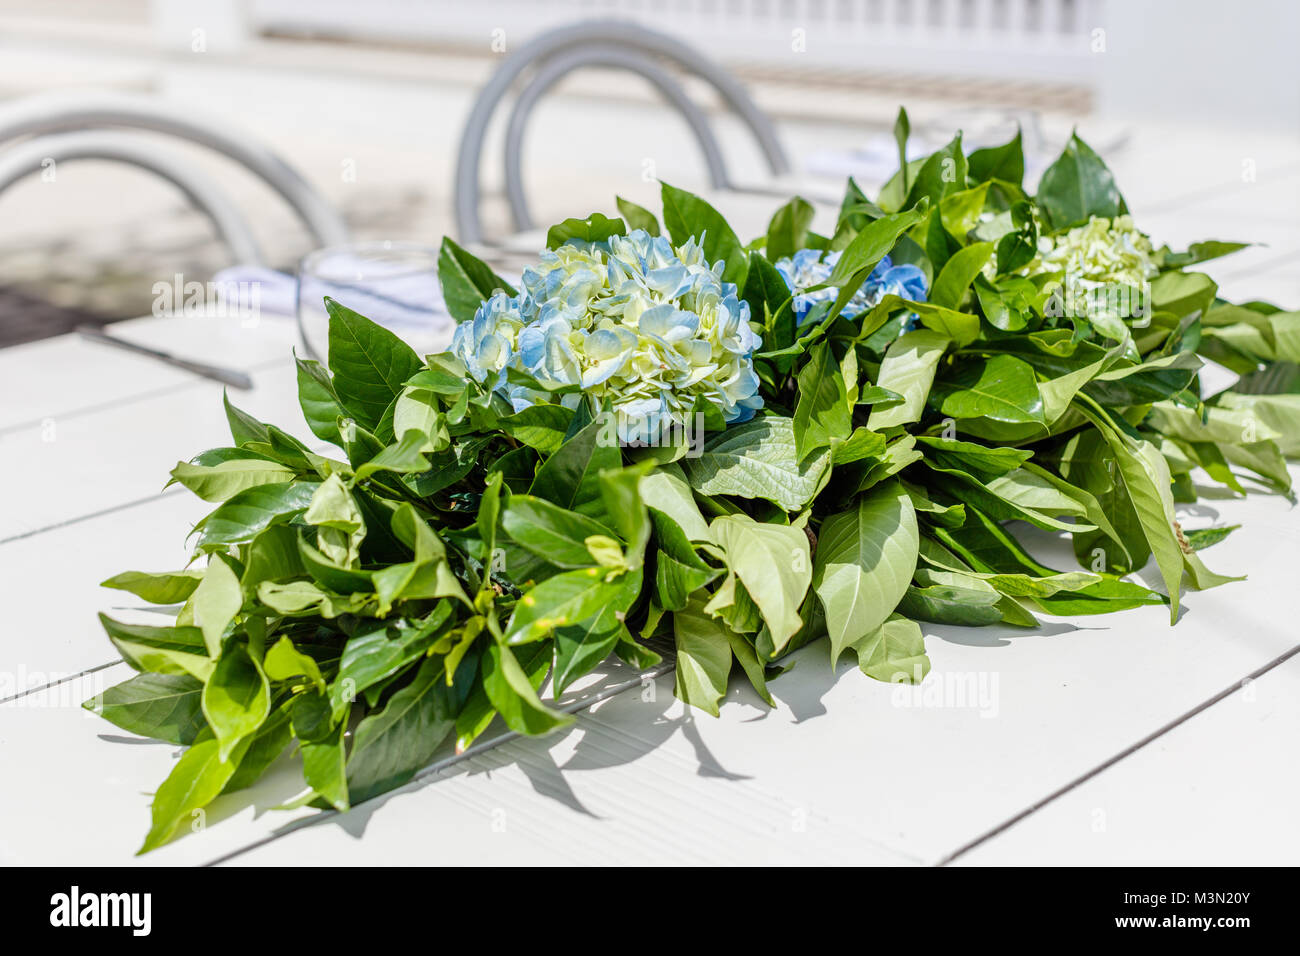 White Table With Hortensia Flower Bouquet For A Wedding Set Up White Stock Photo Alamy